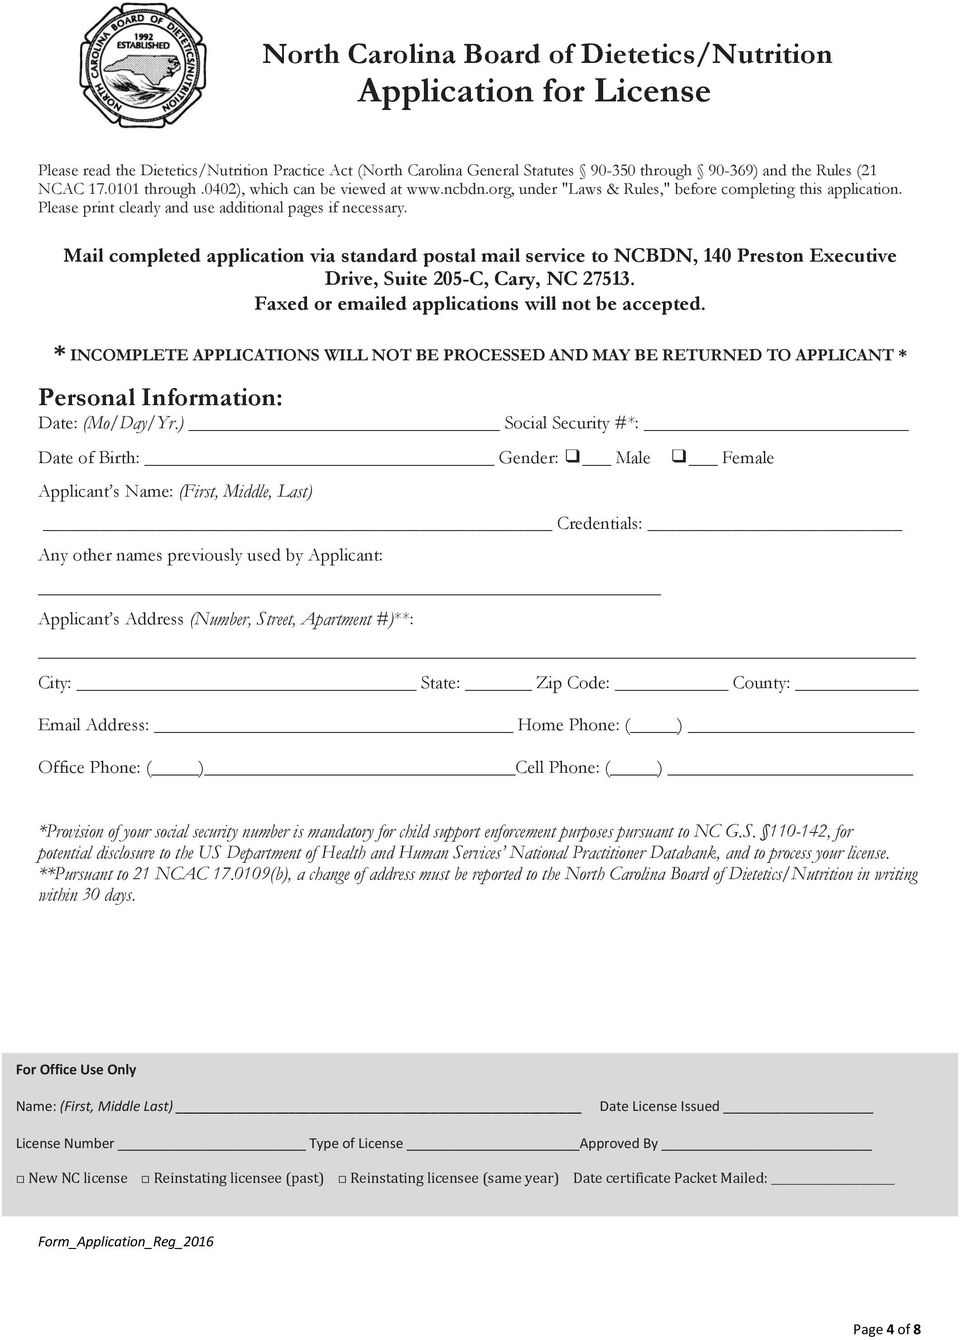 Mail completed application via standard postal mail service to NCBDN, 140 Preston Executive Drive, Suite 205-C, Cary, NC 27513. Faxed or emailed applications will not be accepted.